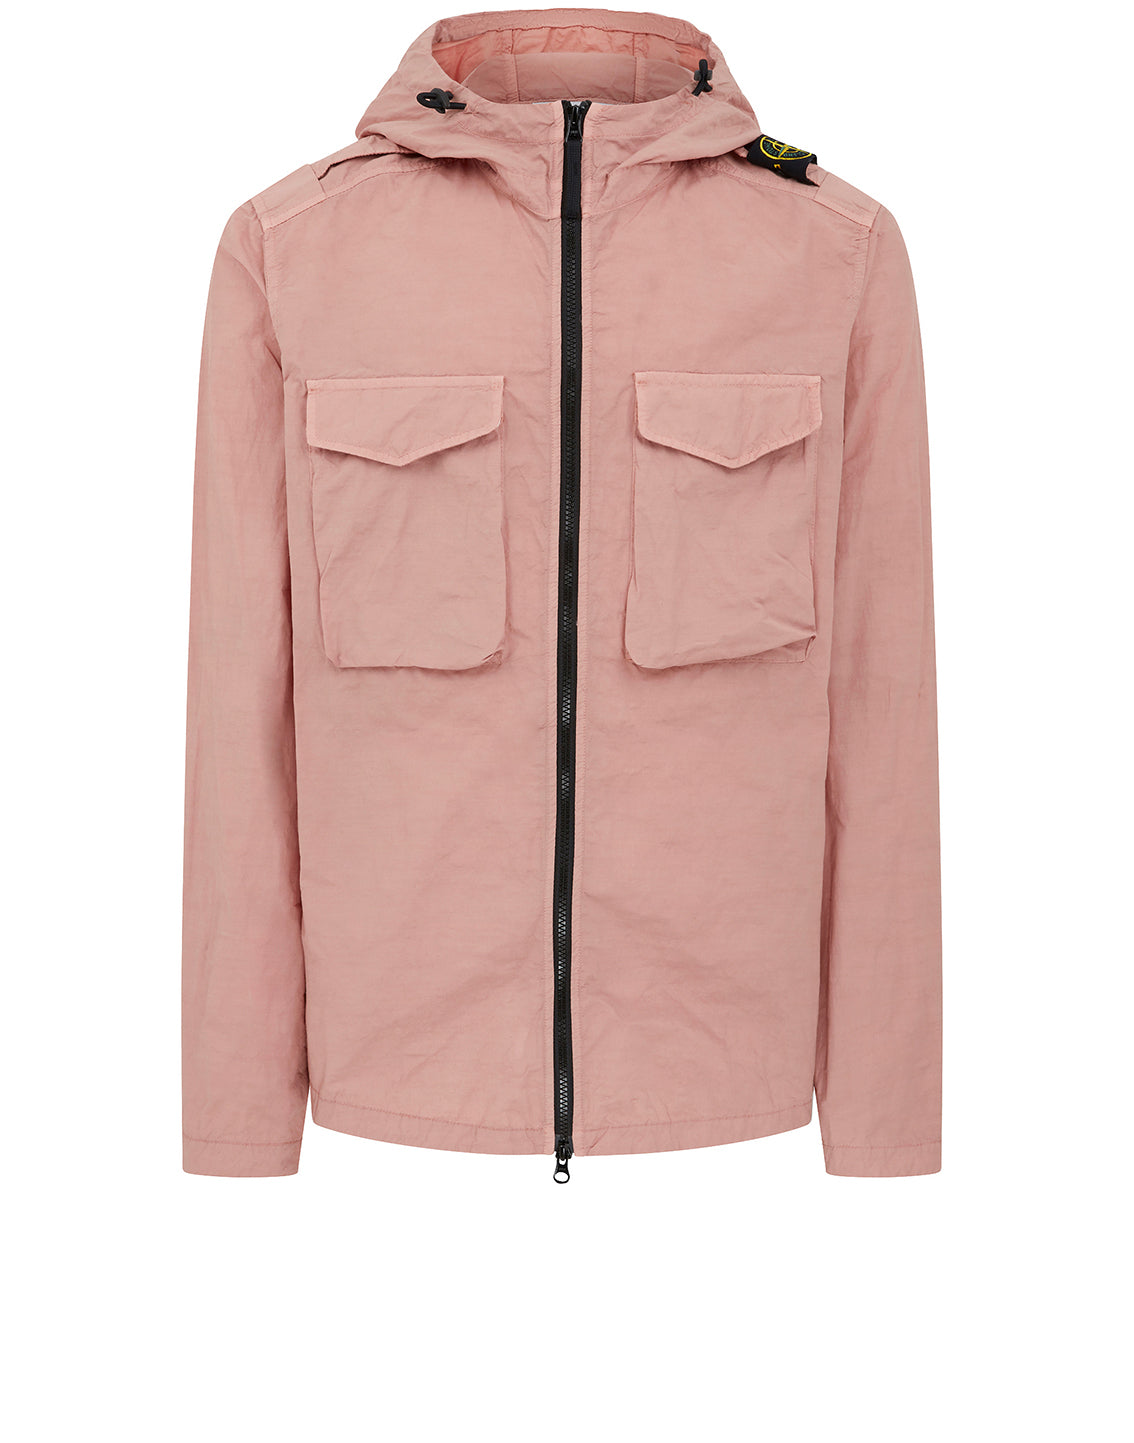 11602 NASLAN LIGHT Overshirt in Rose Pink